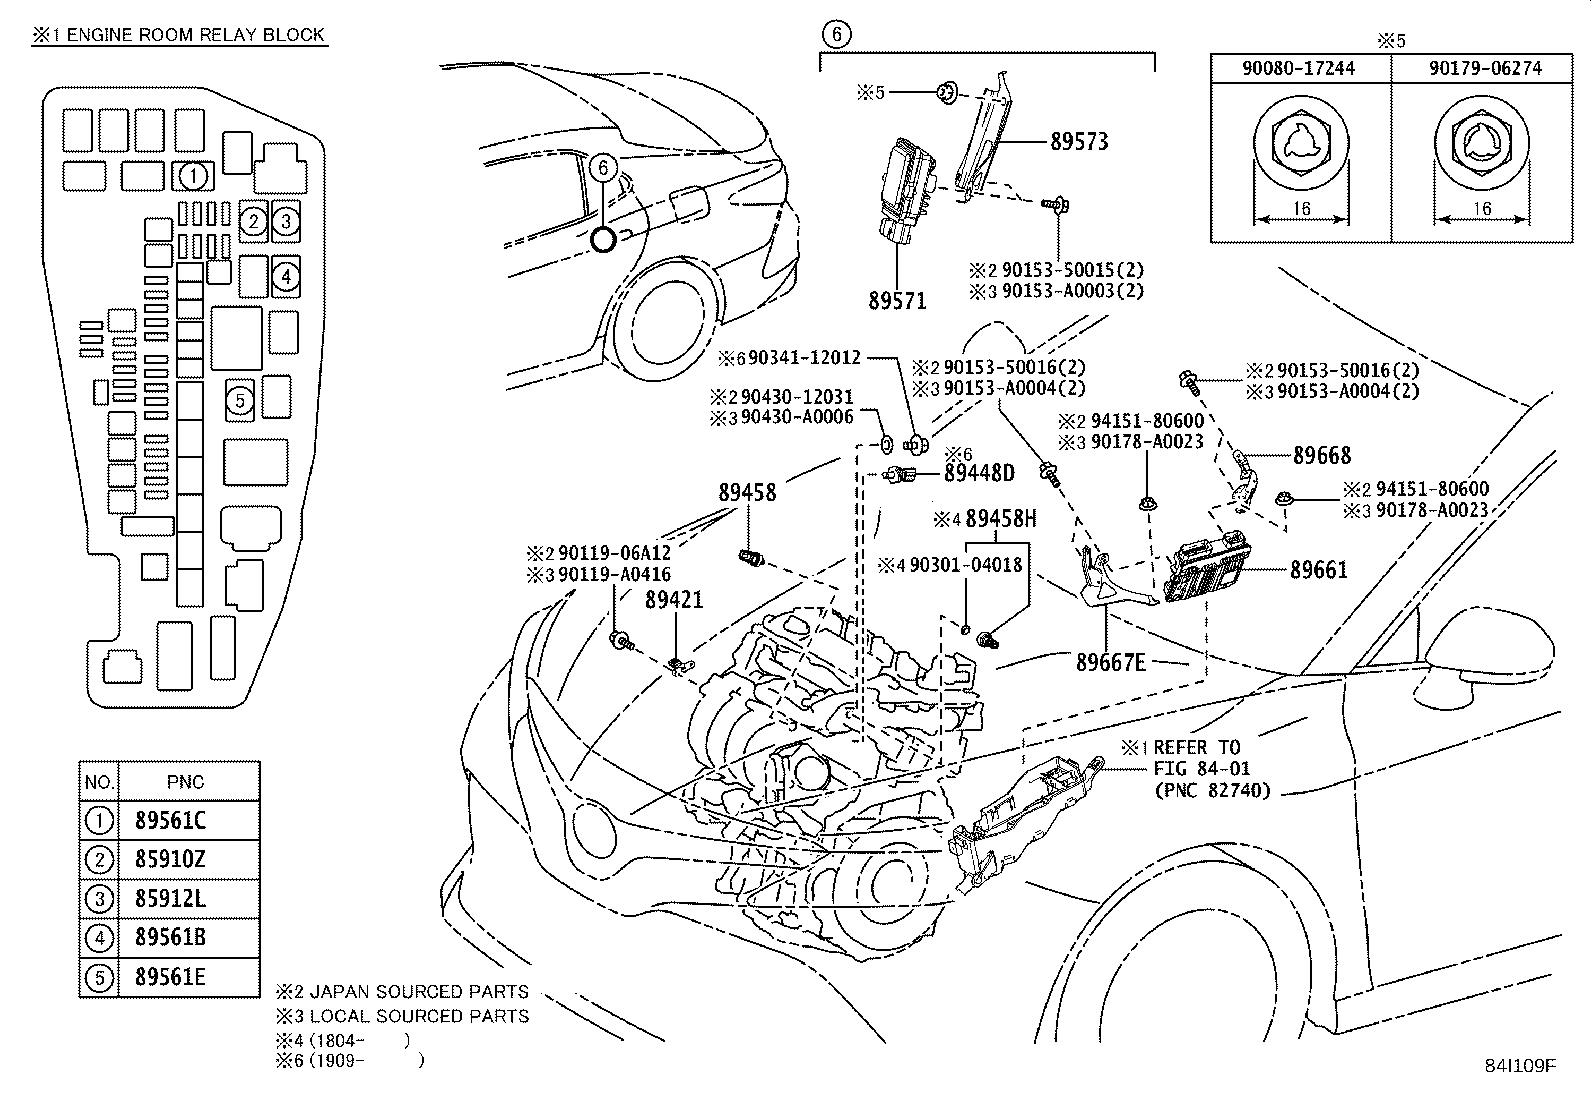 Toyota Camry Computer Fuel Pump Control Electrical